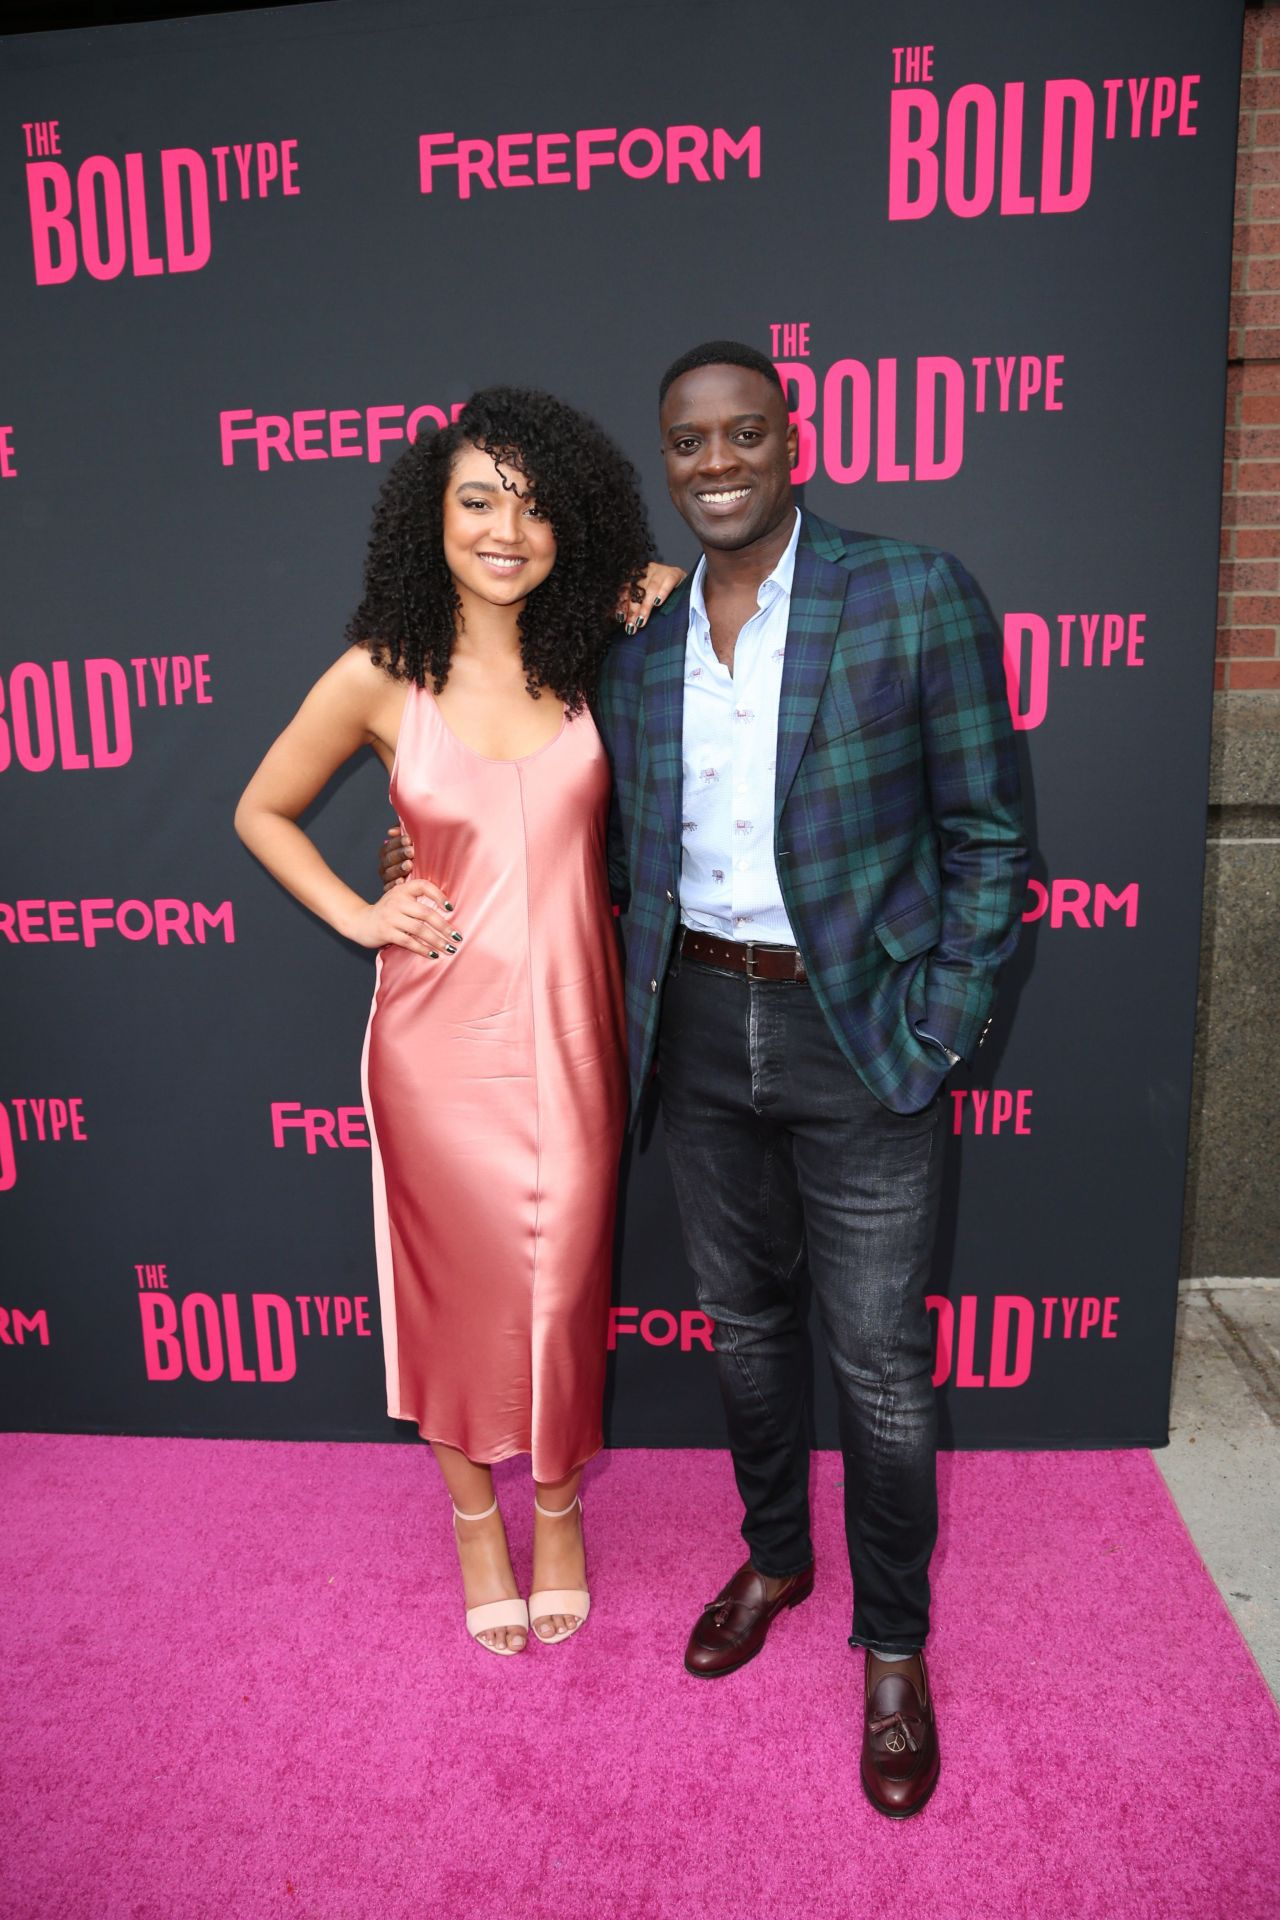 aisha dee the bold type tv show premiere in nyc 06 22 2017. Black Bedroom Furniture Sets. Home Design Ideas